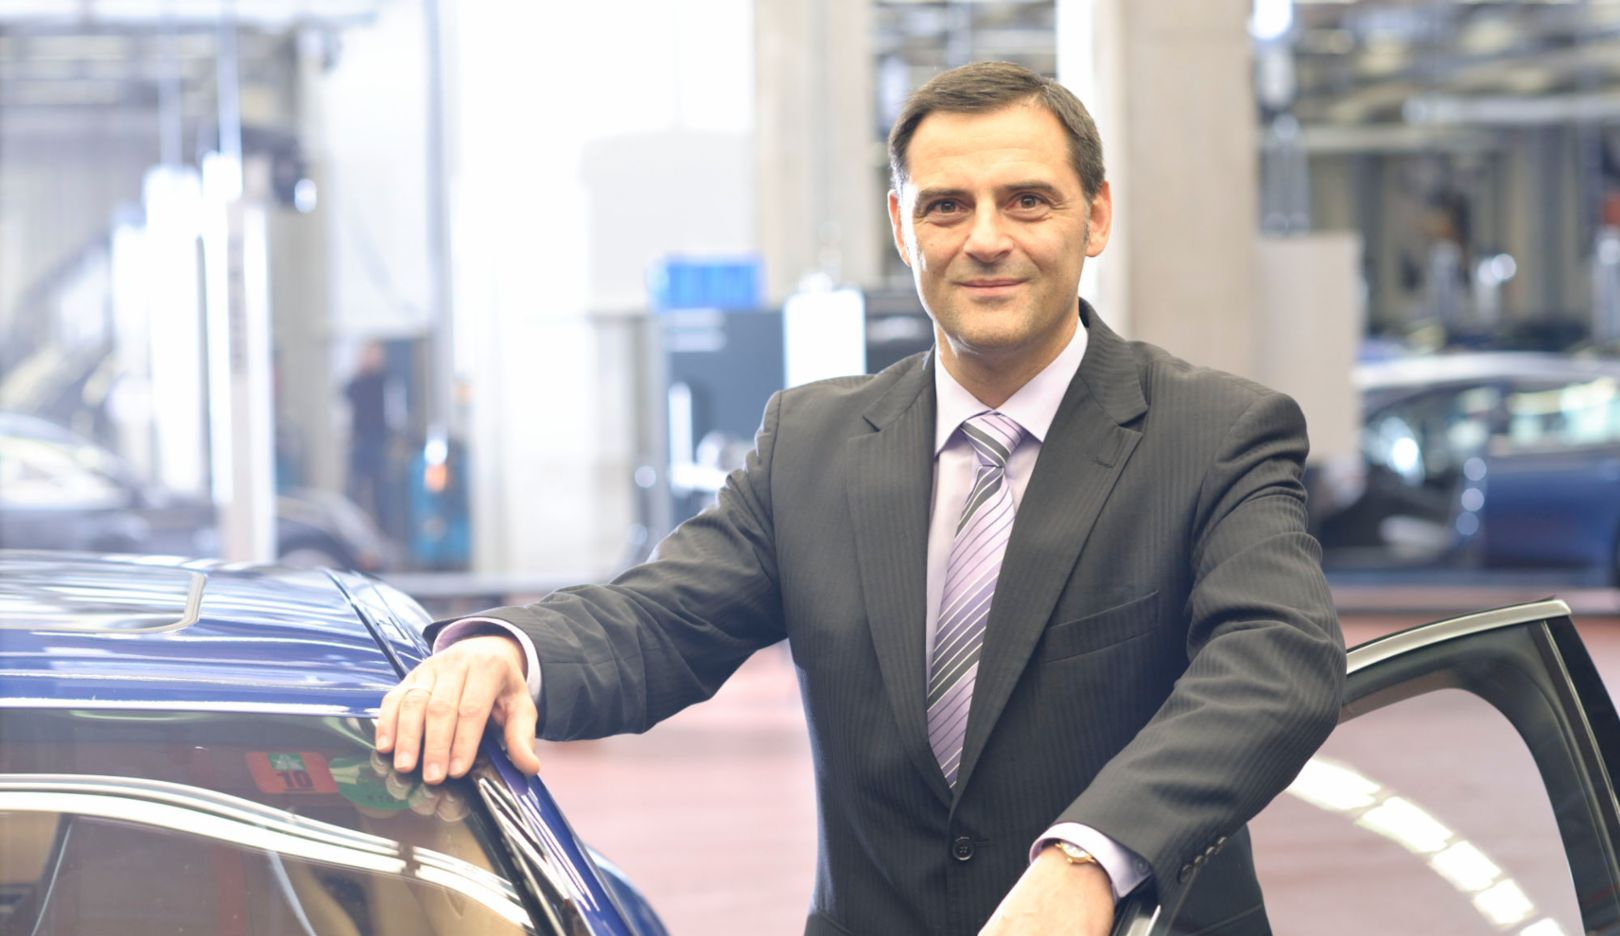 Michael Steiner, Member of the Executive Board, Research and Development, 2016, Porsche AG